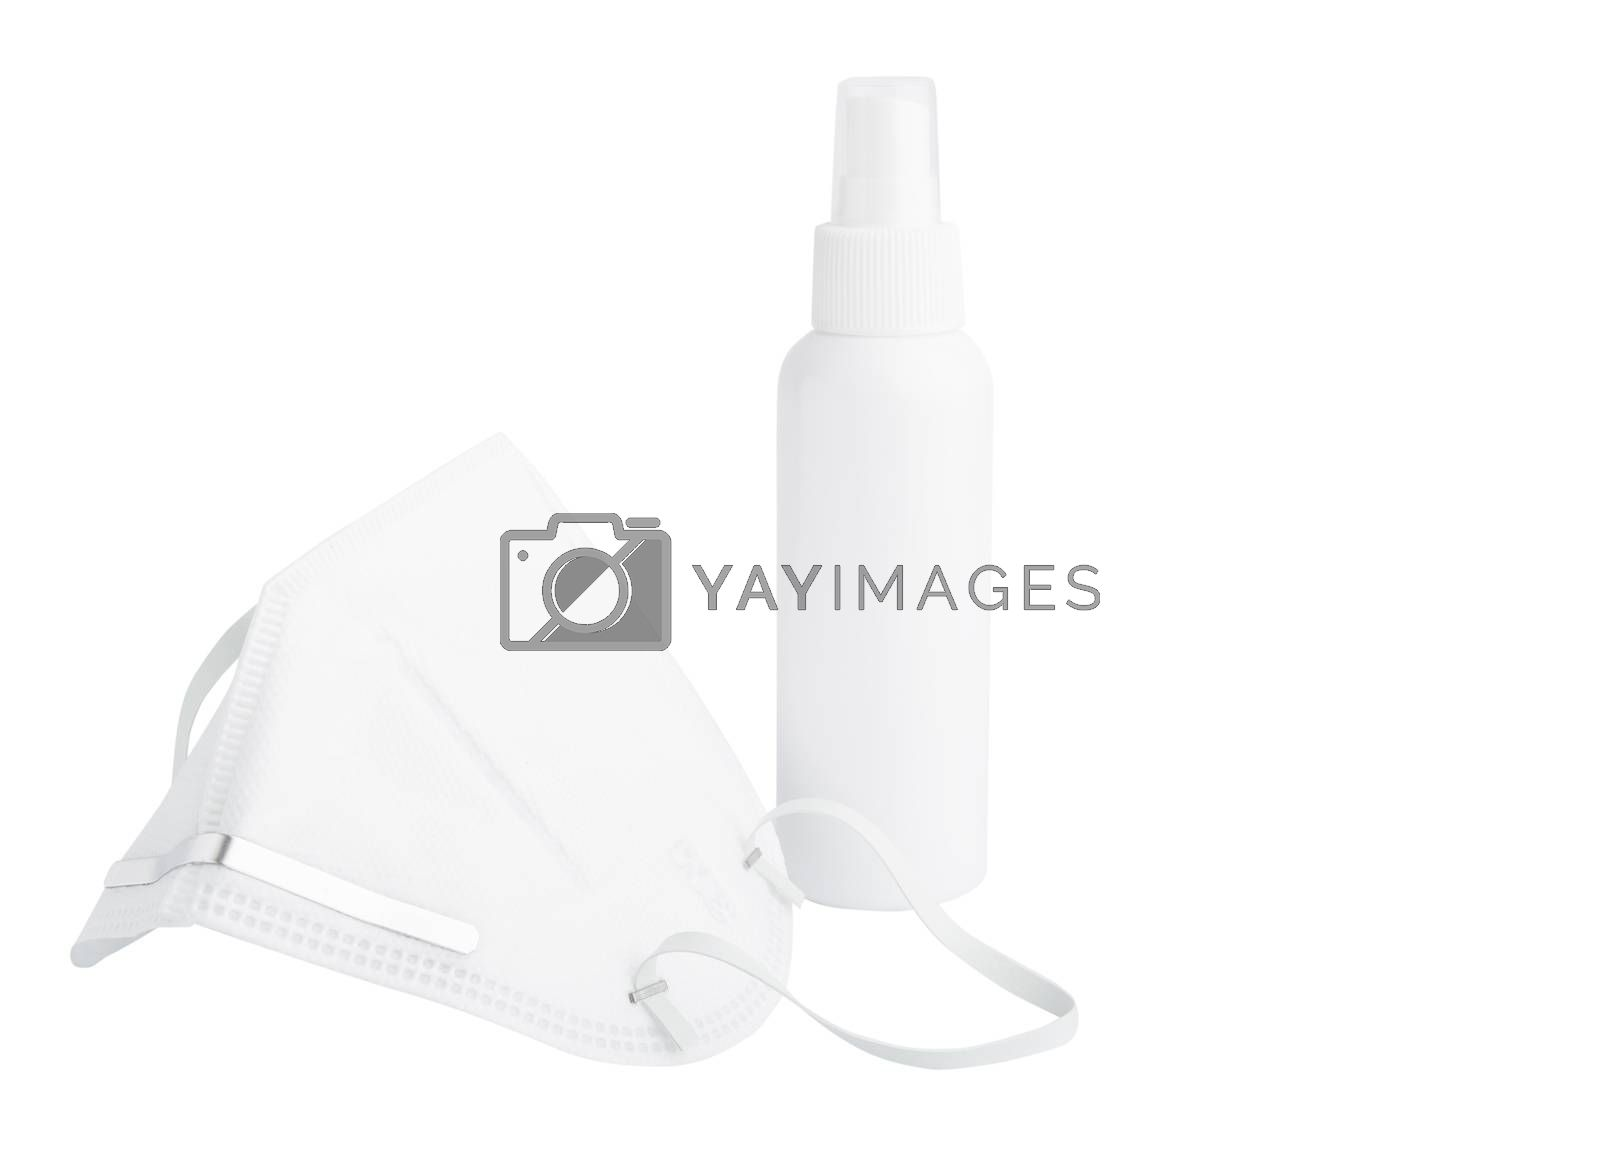 White mask for wearing germ protection  and gel alcohol or hand sanitizer spray bottle for washing hand  to protect from corona virus  isolated over white background with clipping path